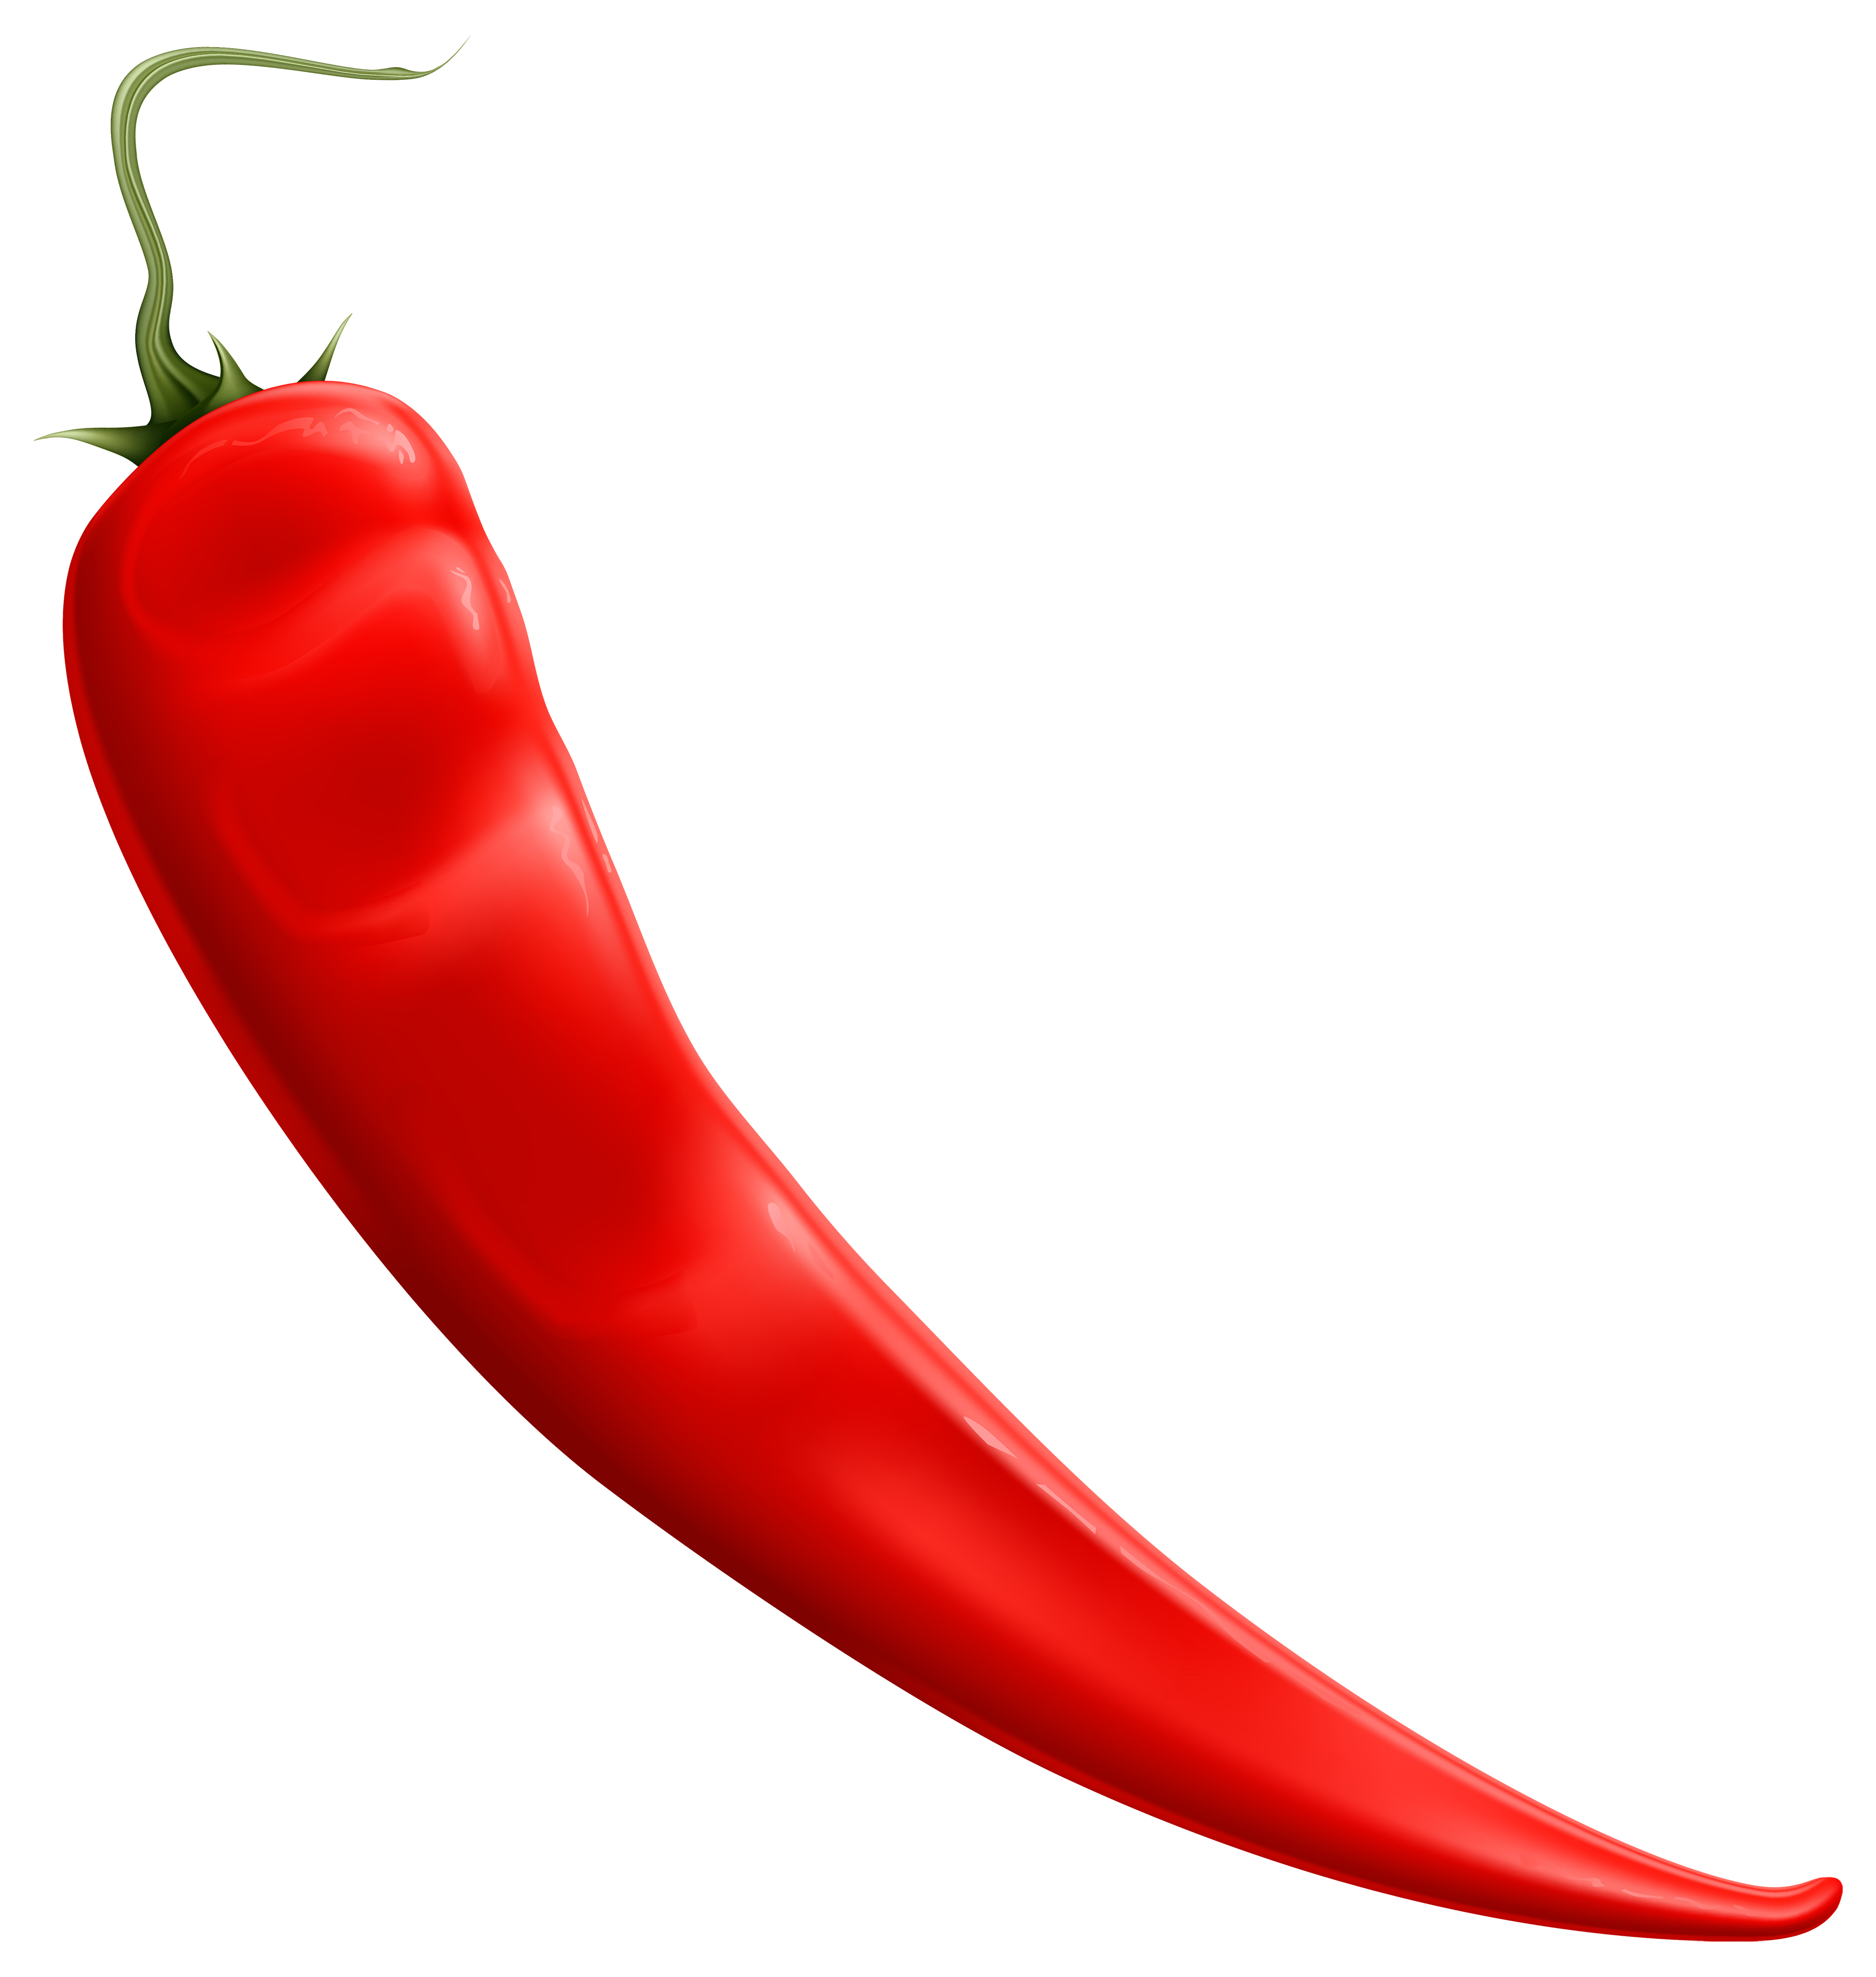 Chili clipart red chilli. Pepper png best web